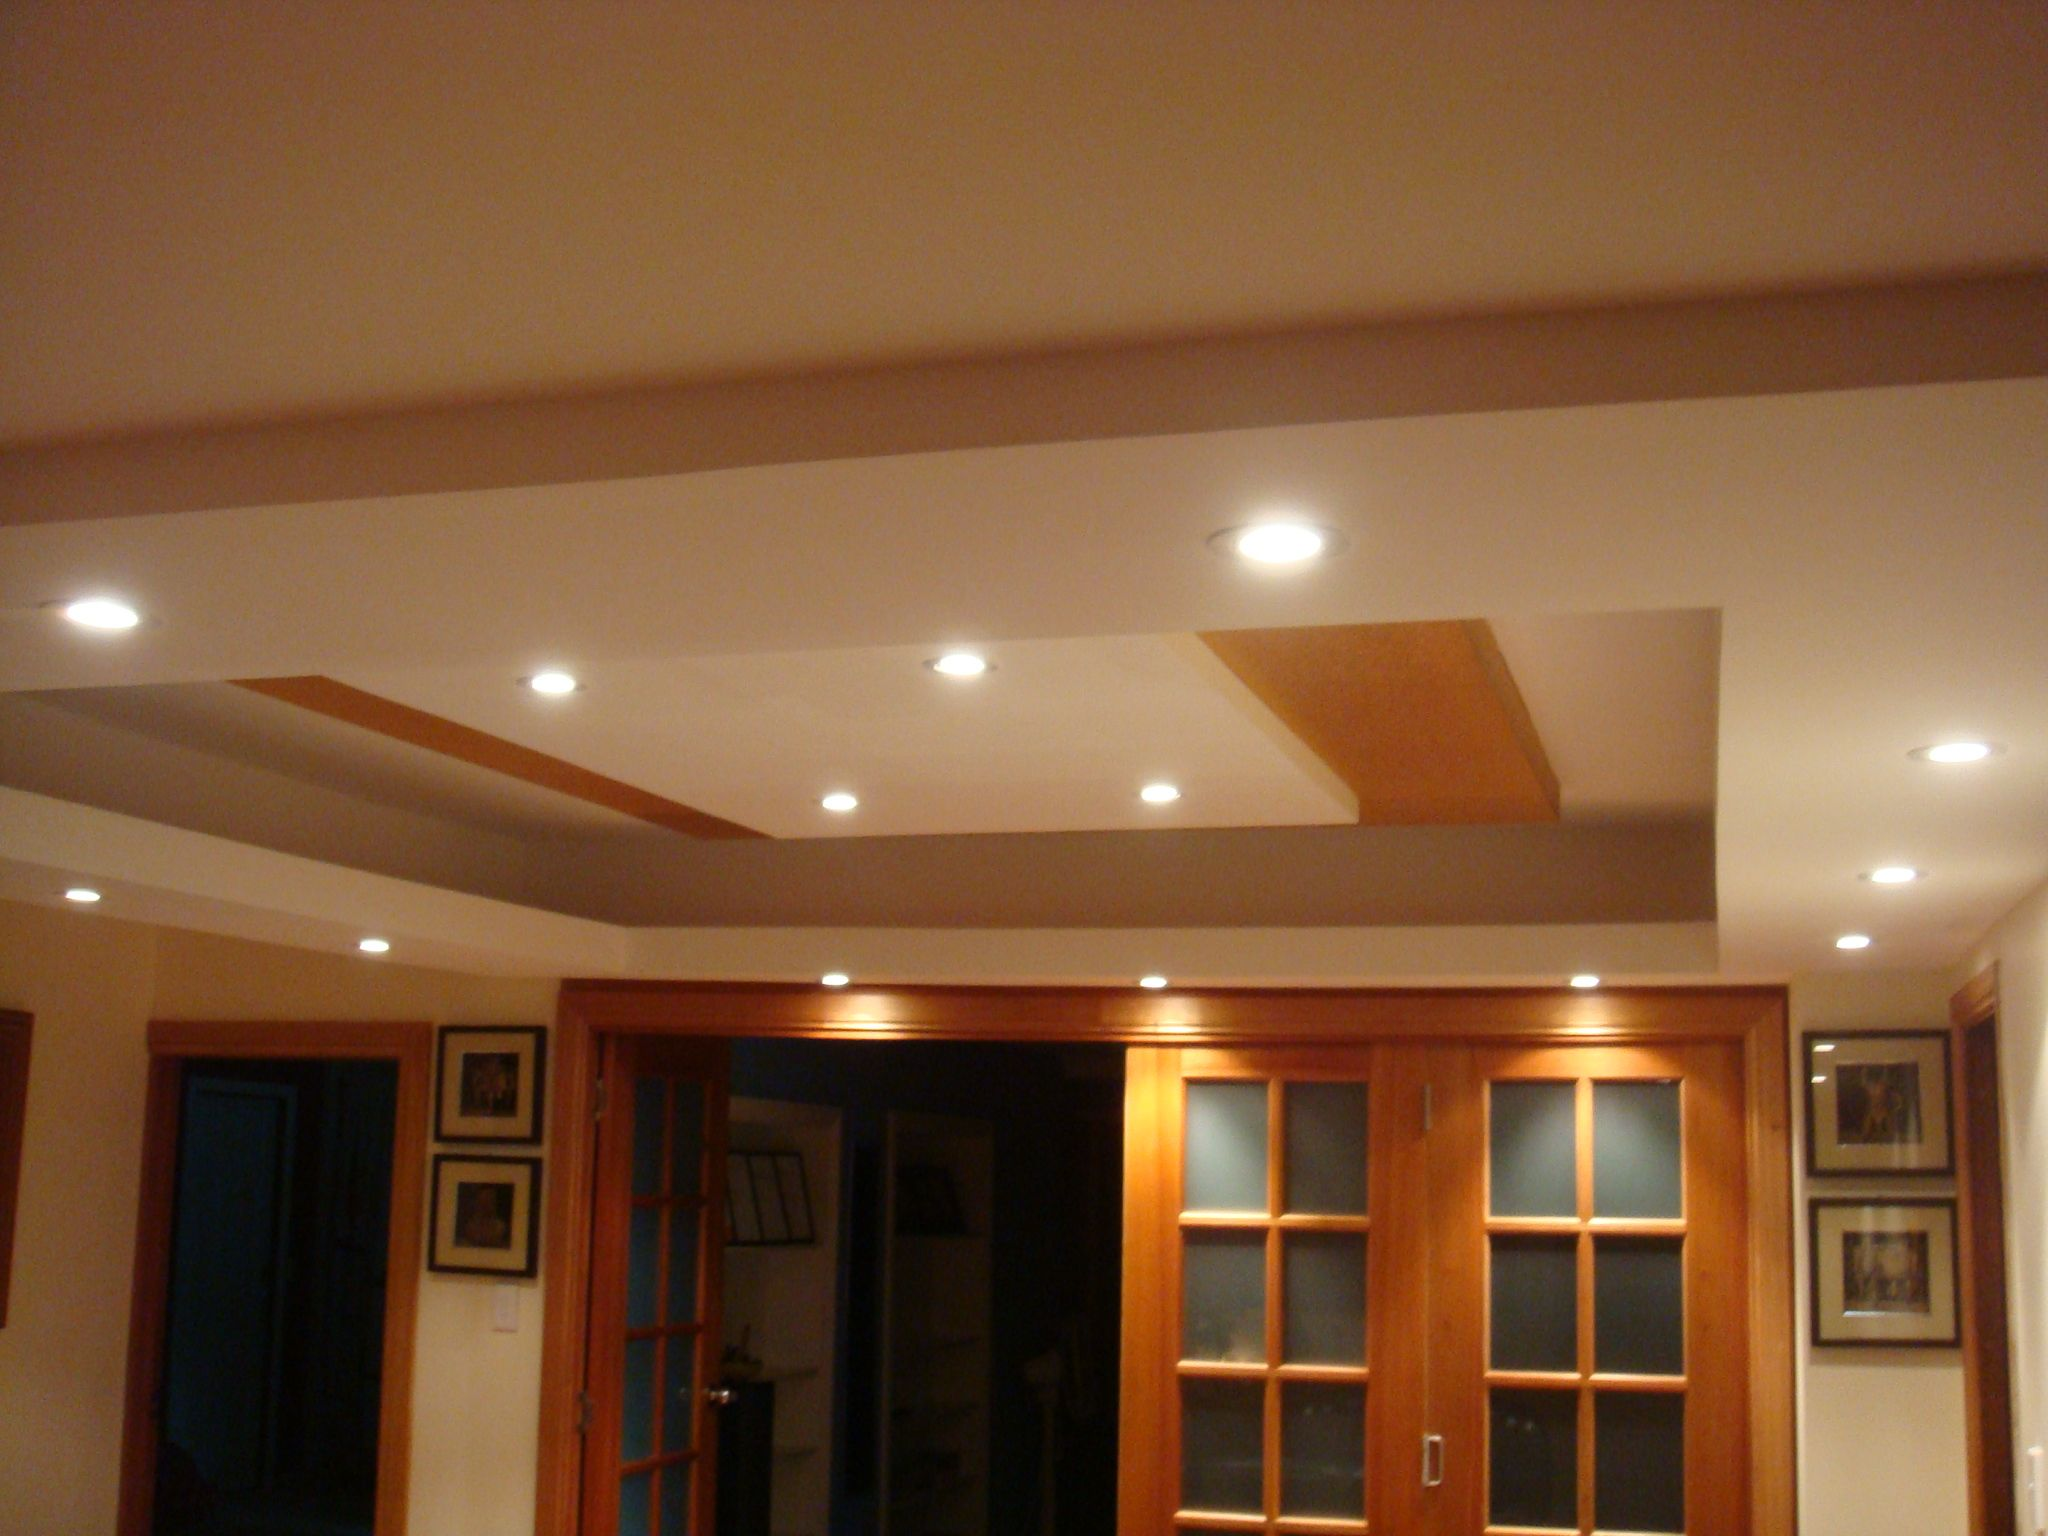 Latest Gypsum Ceiling Designs Hall Image Vectronstudios